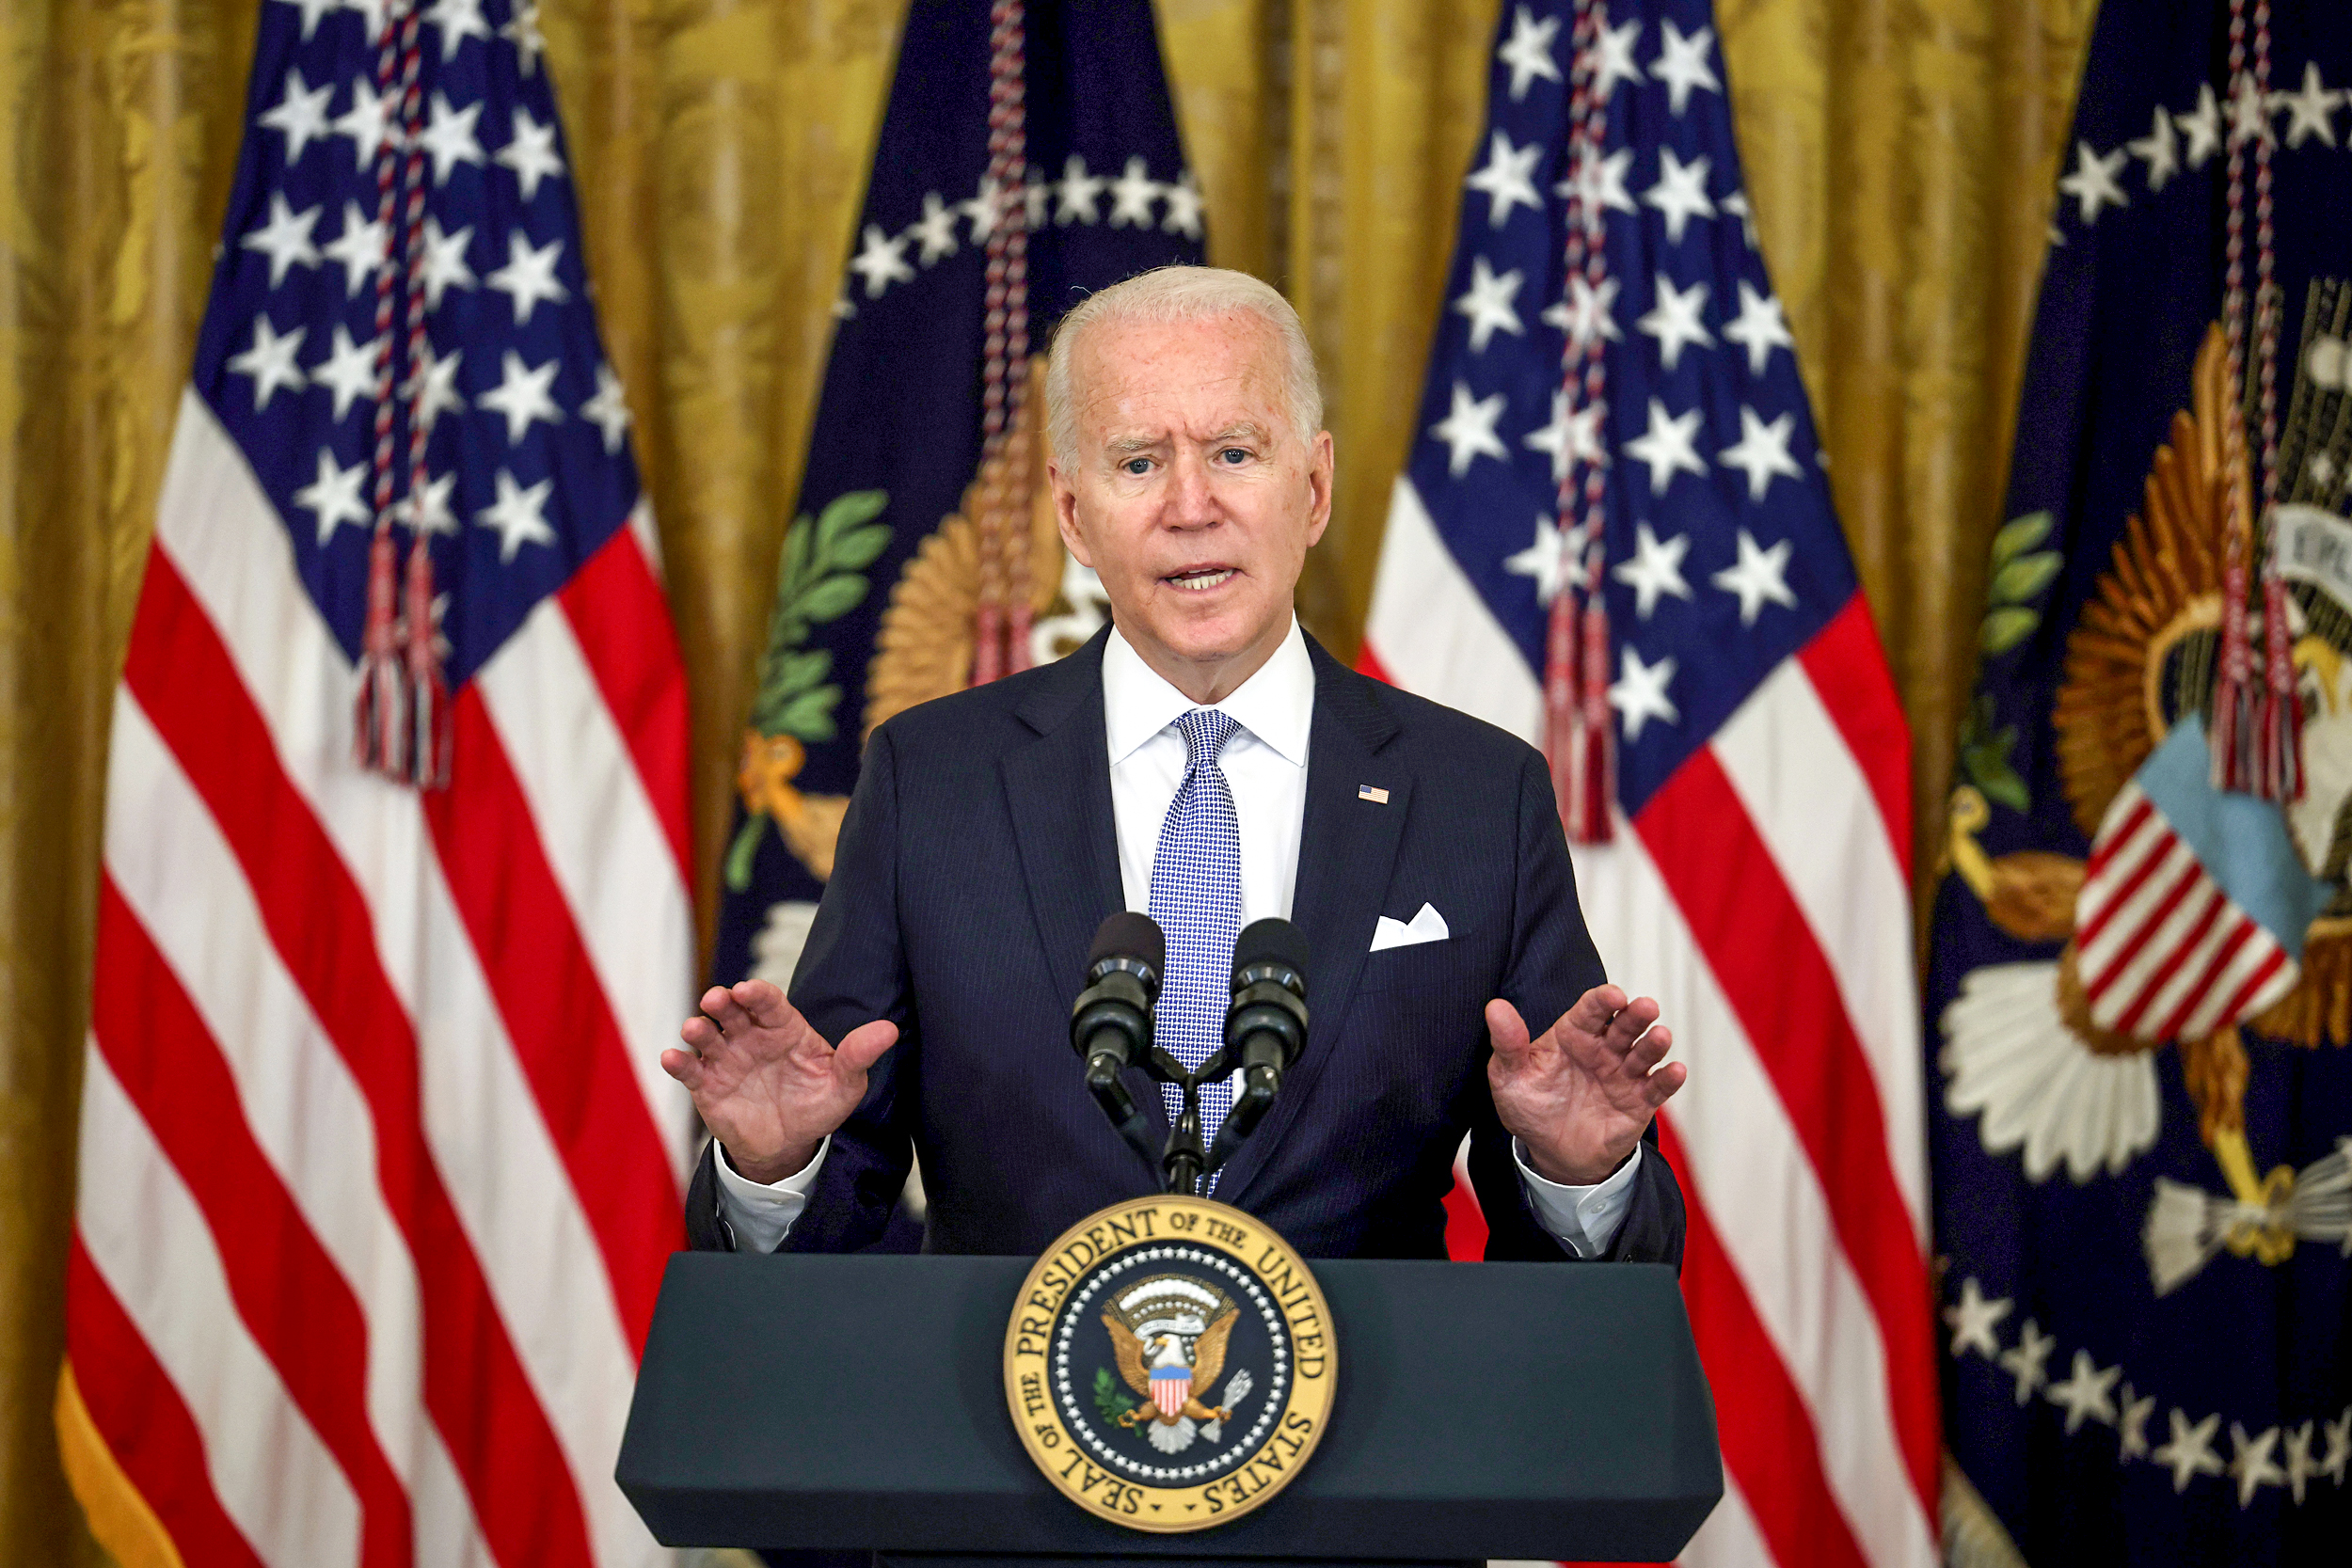 Biden says federal workers must get vaccinated or face testing, urges $100 payments